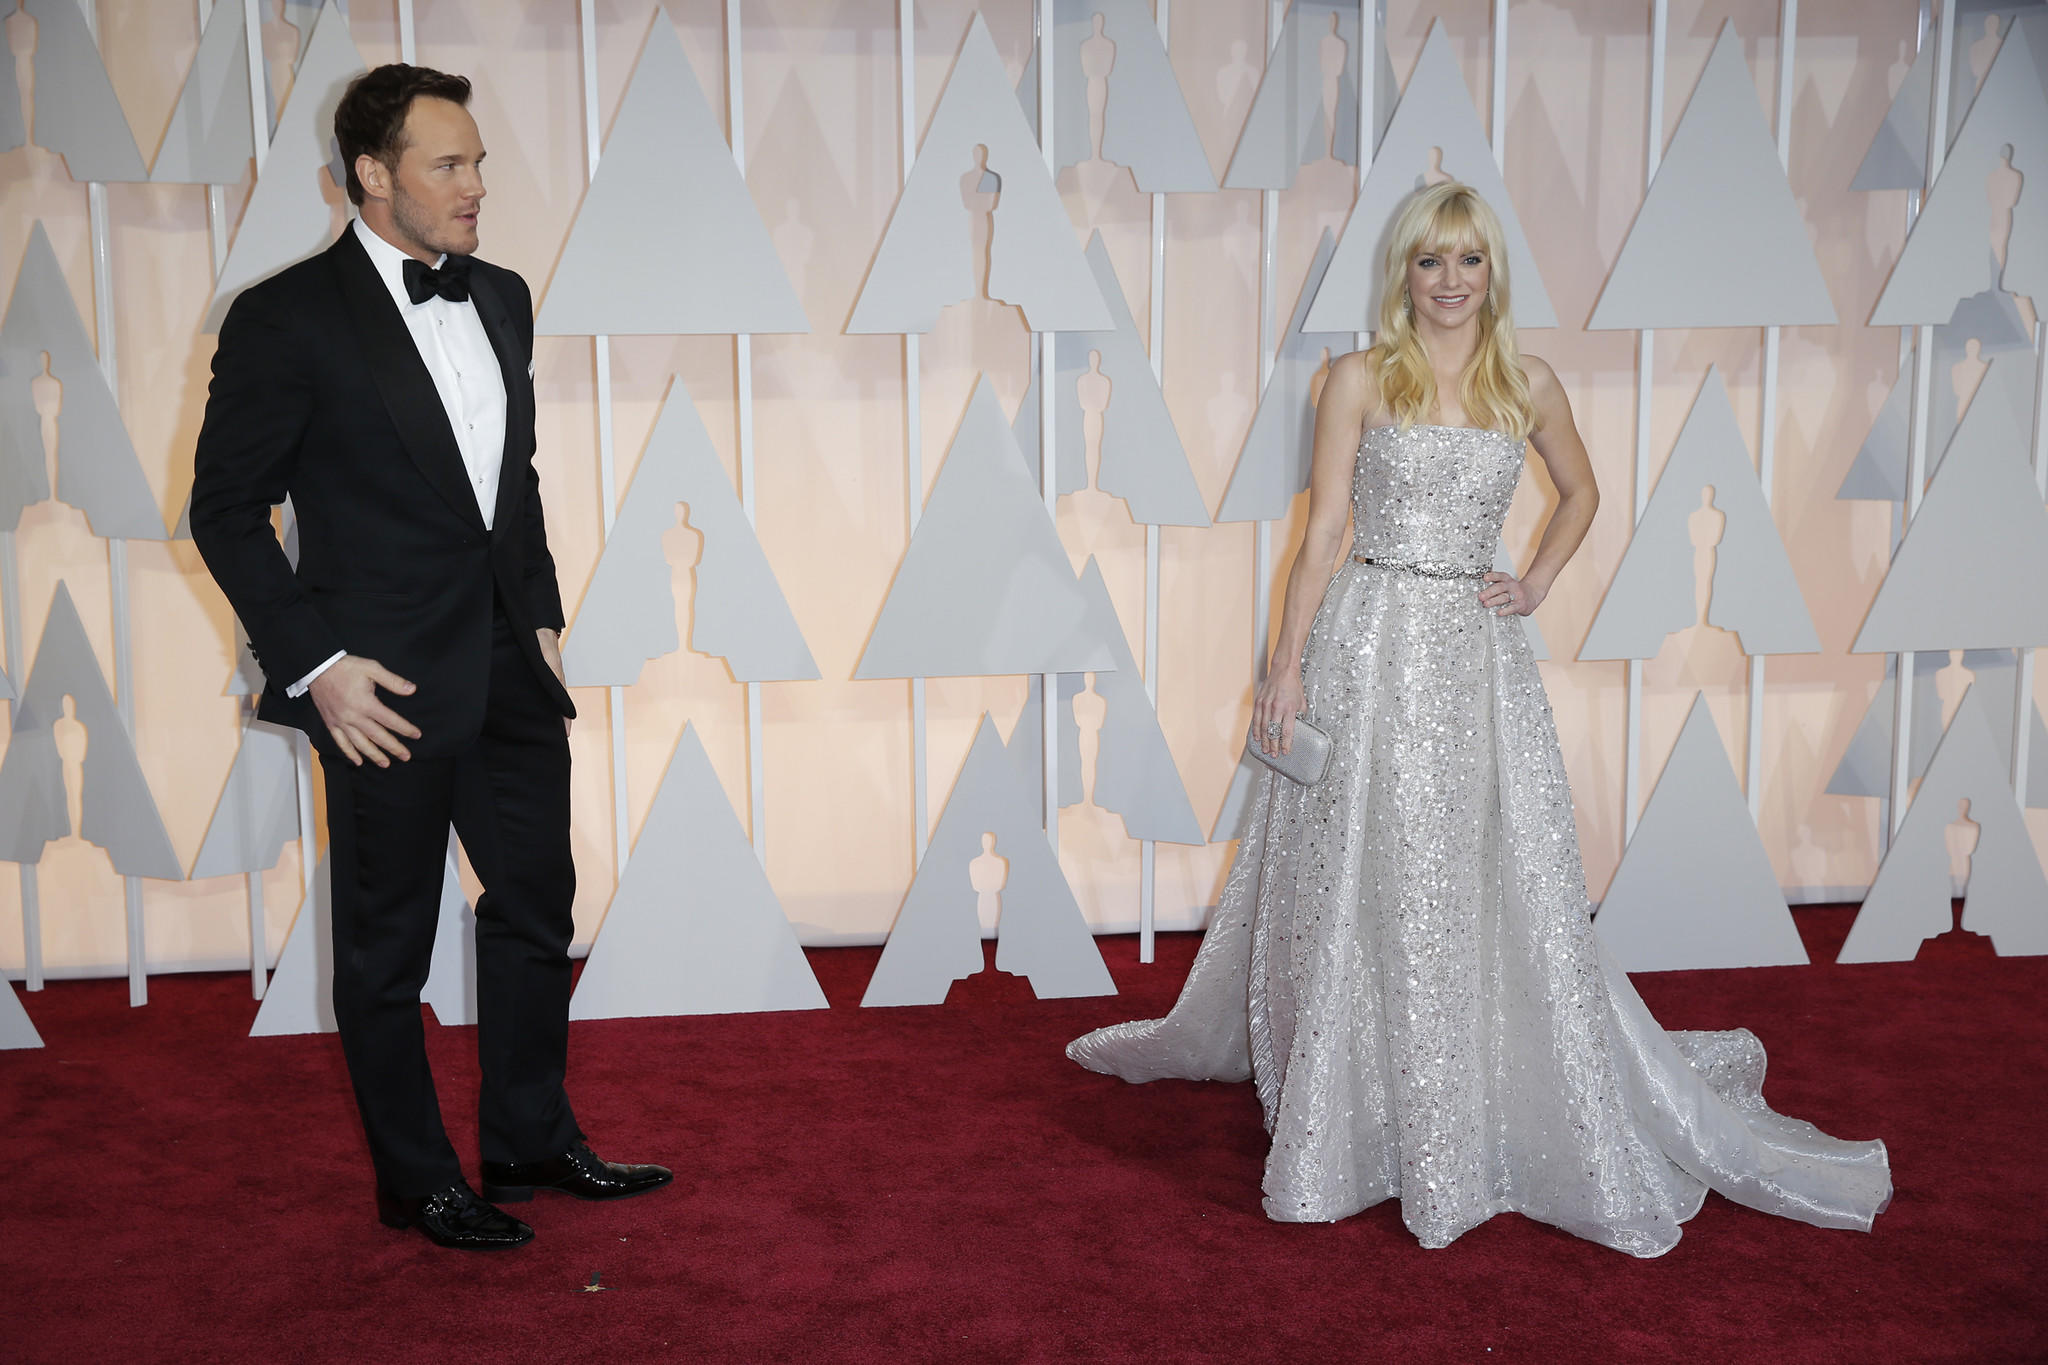 Here's why Chris Pratt & Anna Faris chose to split - nope, no cheating